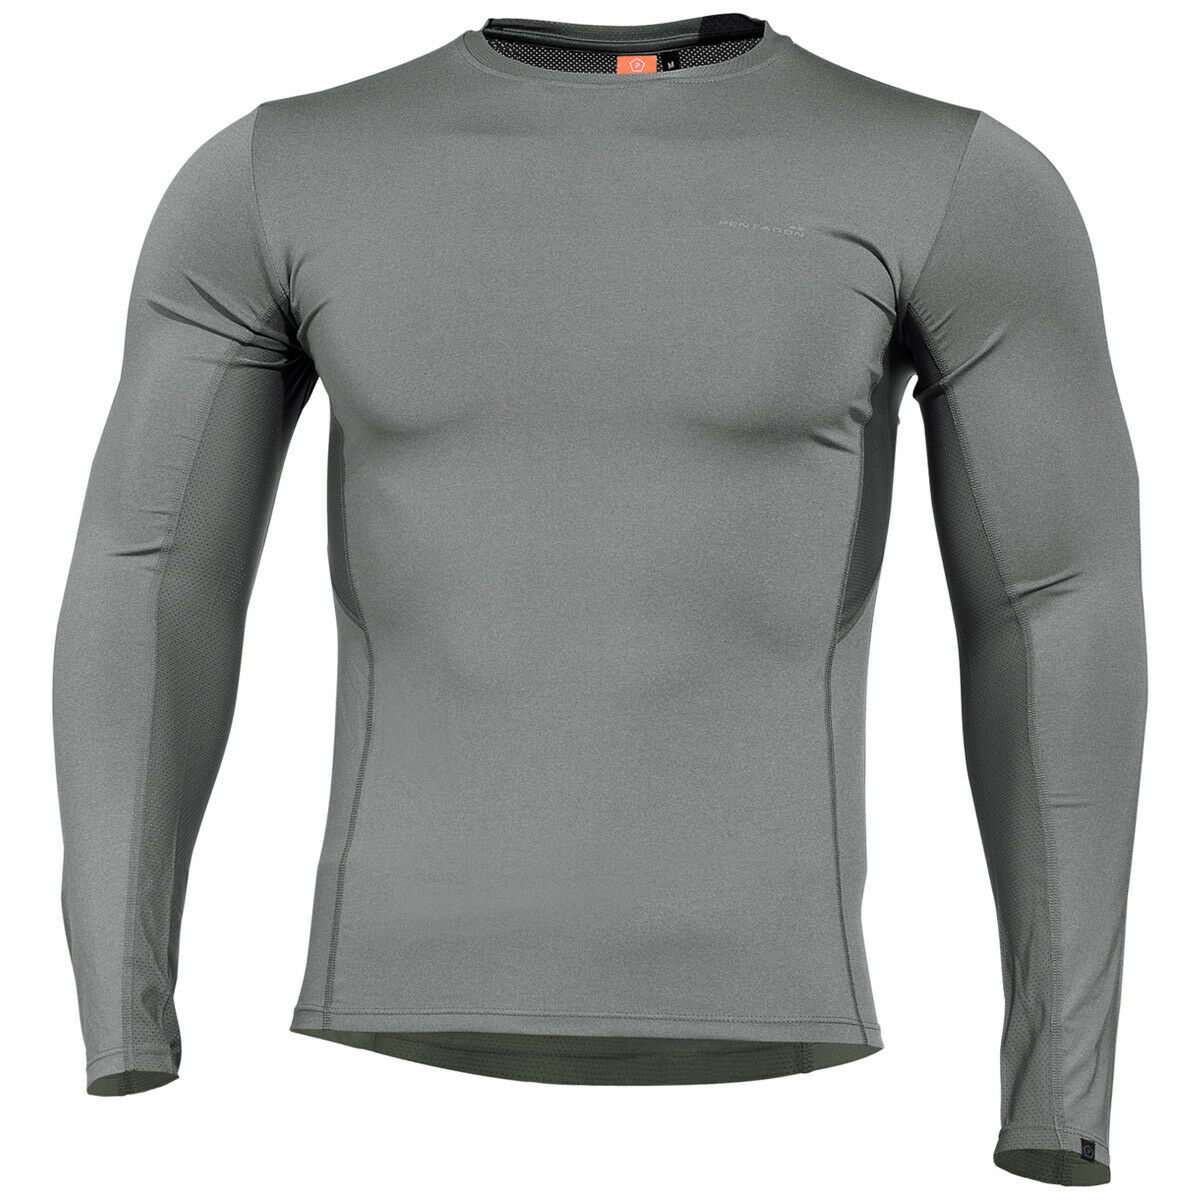 Pentagon Apollo Tac Fresh Activity Shirt Mens Base Layer Long Sleeve Wolf Grey